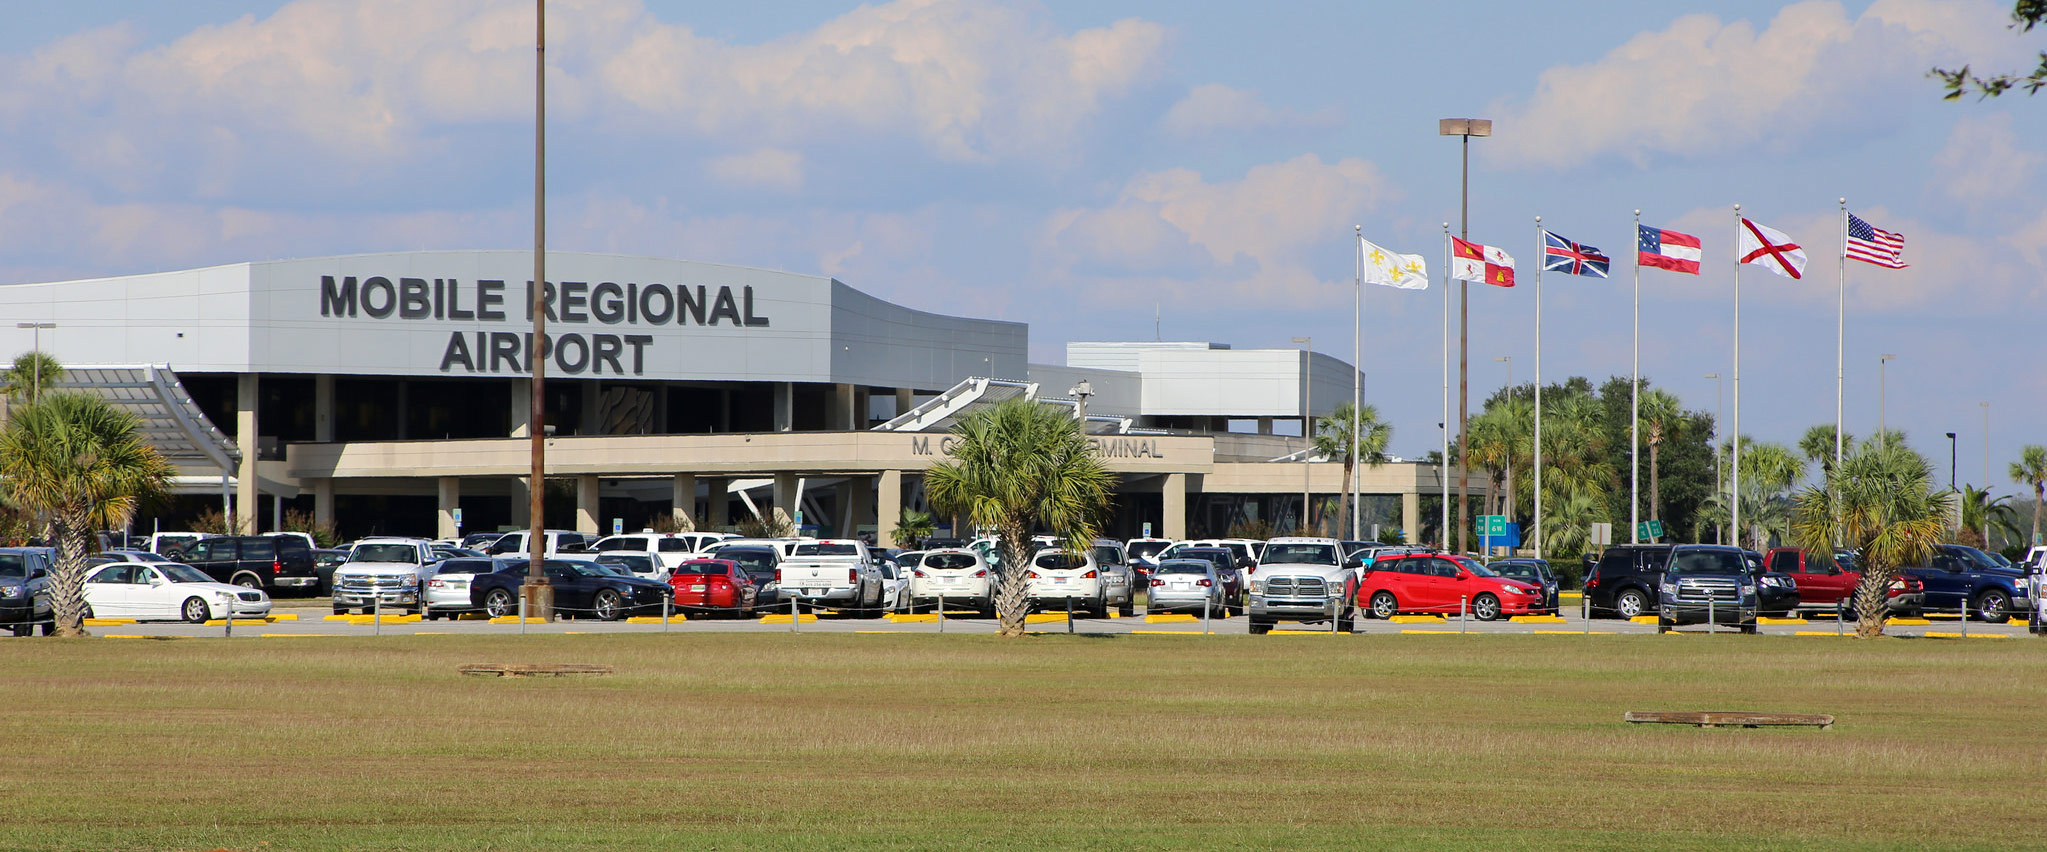 The front of the Mobile Regional Apirport